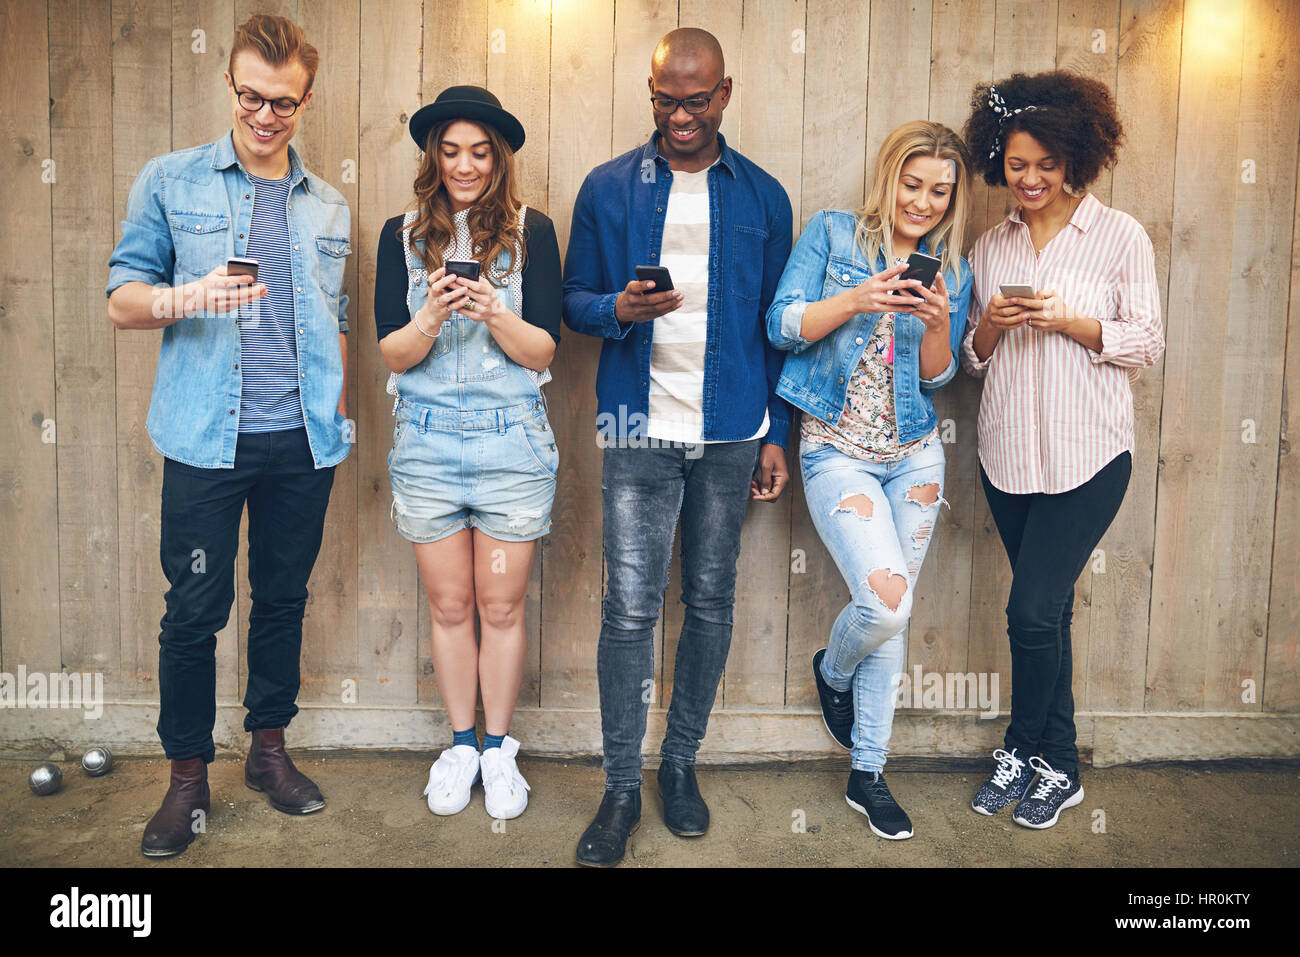 Group Of Young People At Party Or Meeting Wearing Casual Clothes Stock Photo 134625259 Alamy